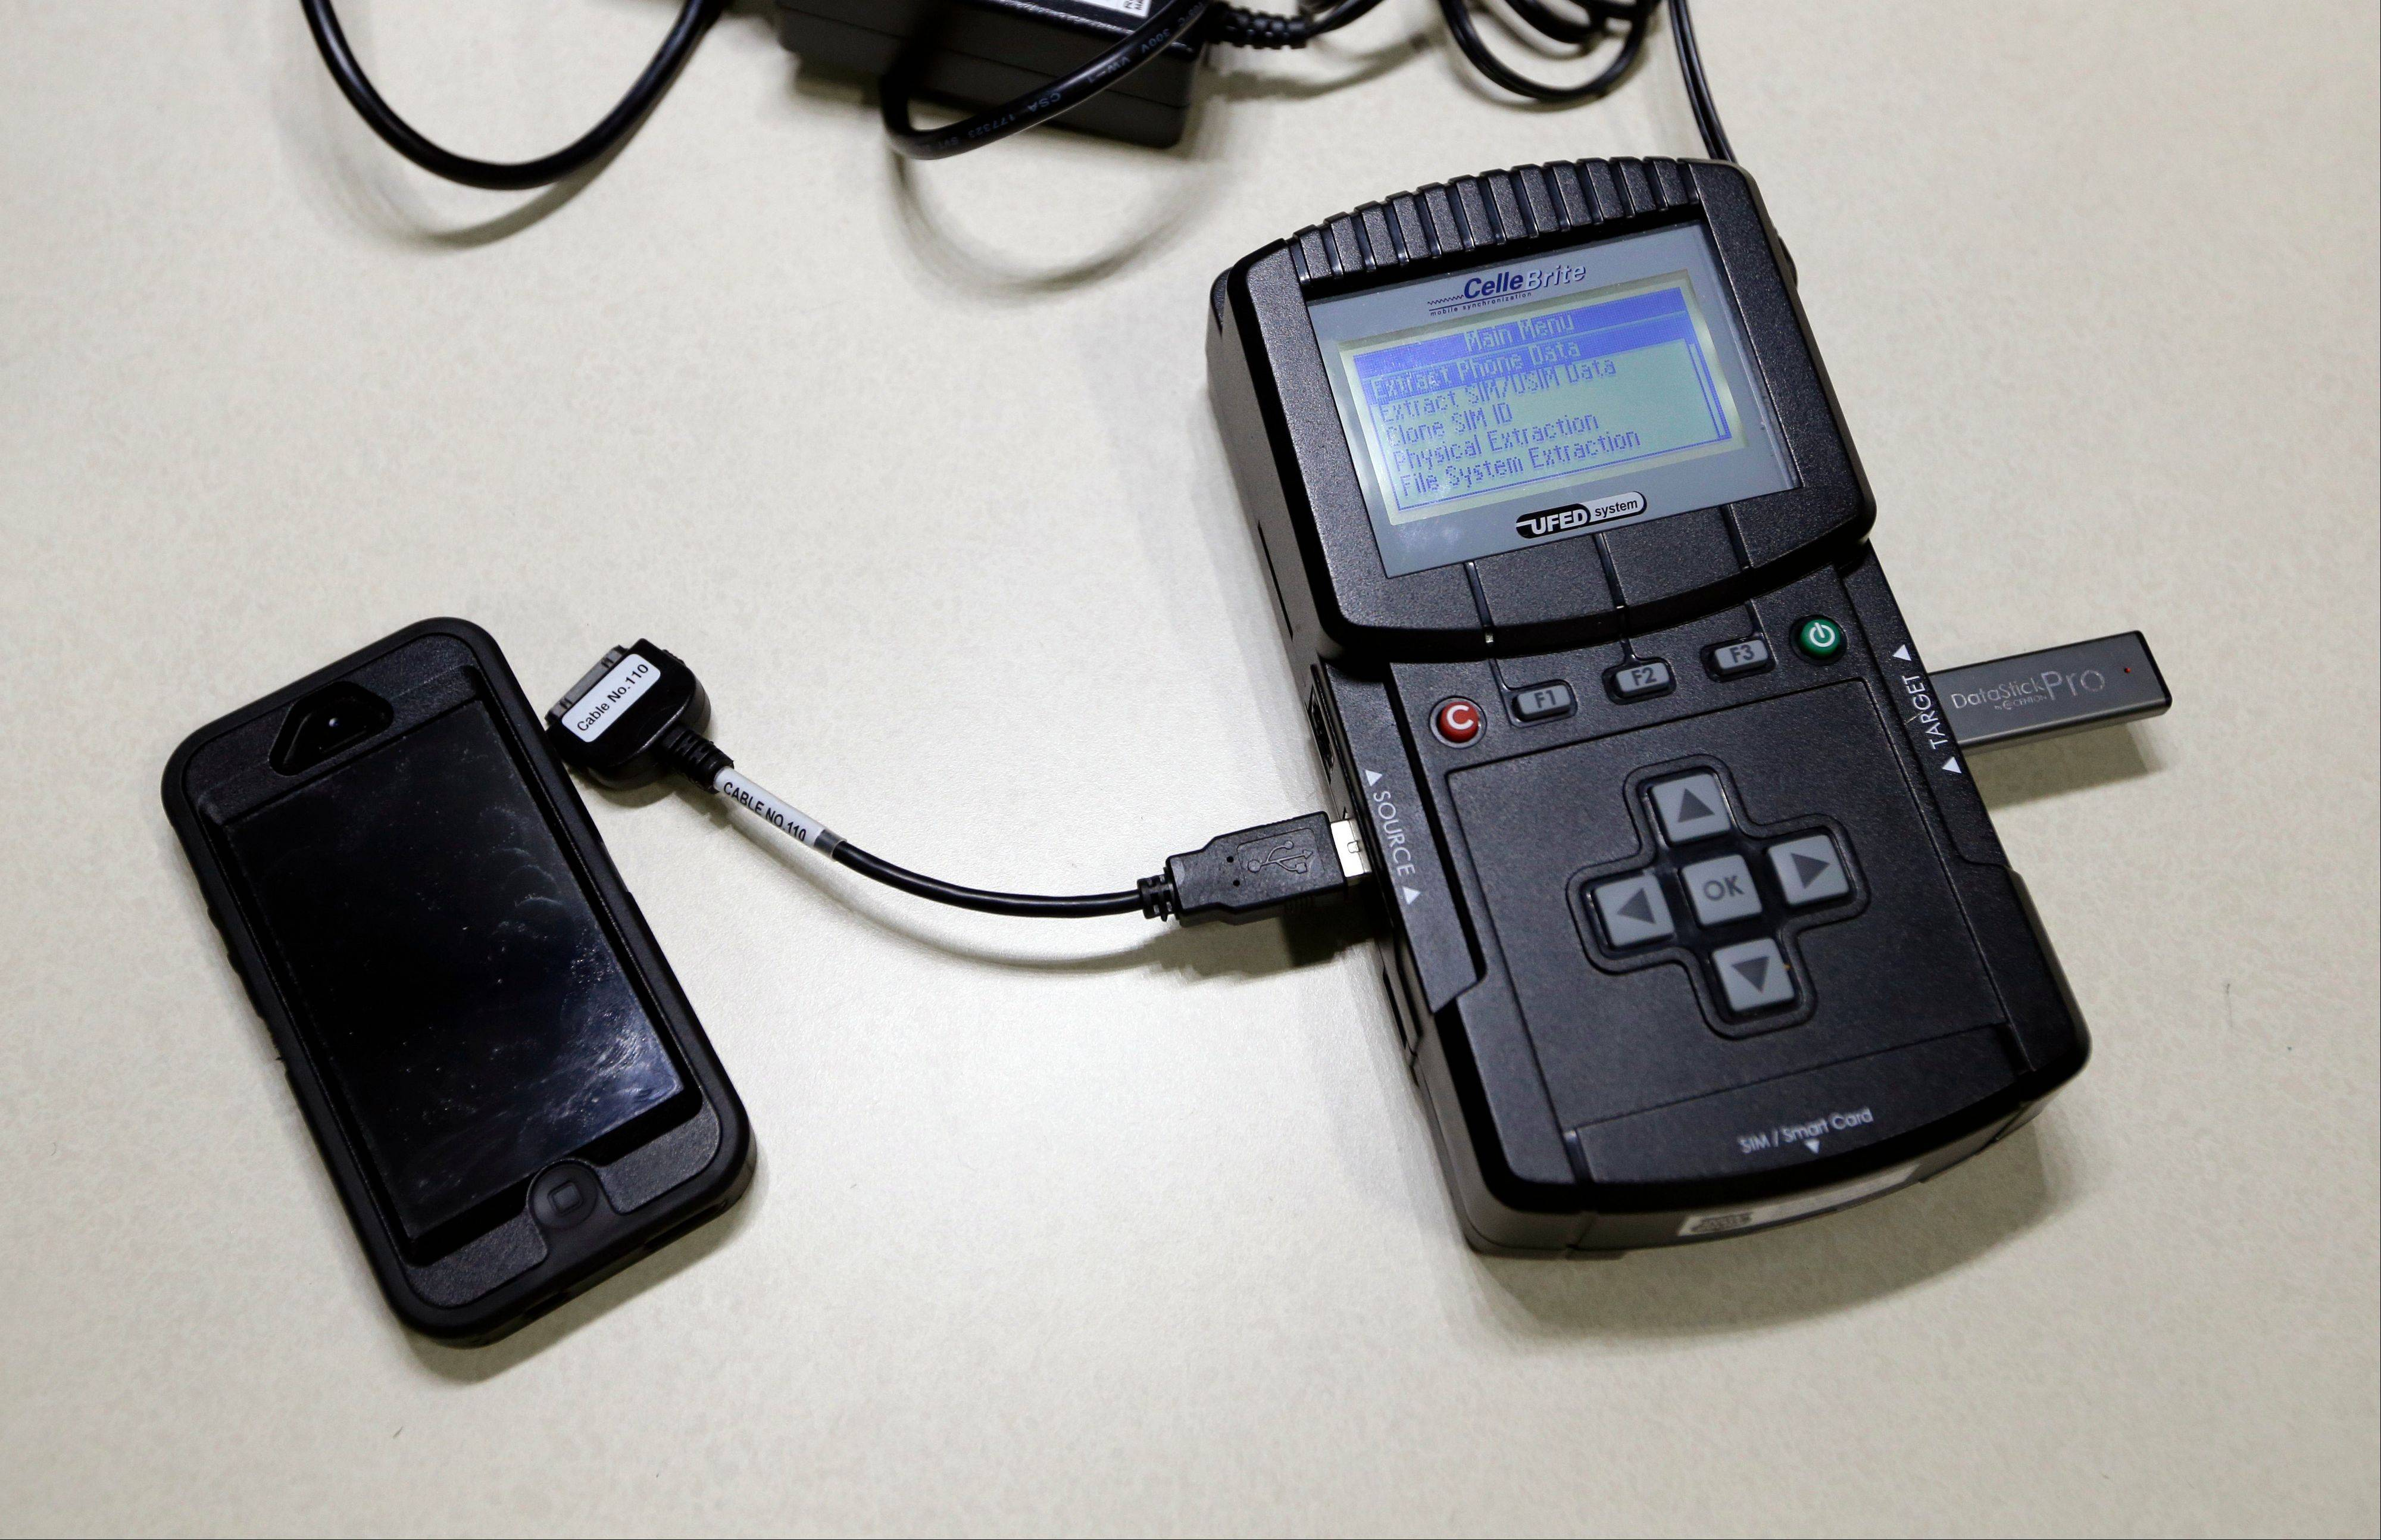 This Feb. 19, photo shows a Universal Forensic Extraction Device used by the Indiana State Police, in Indianapolis. The device is used for data extraction, transfer and analysis for cellular phones and mobile devices by an Indiana task force that is building a national reputation for aggressive pursuit of child pornographers worldwide.